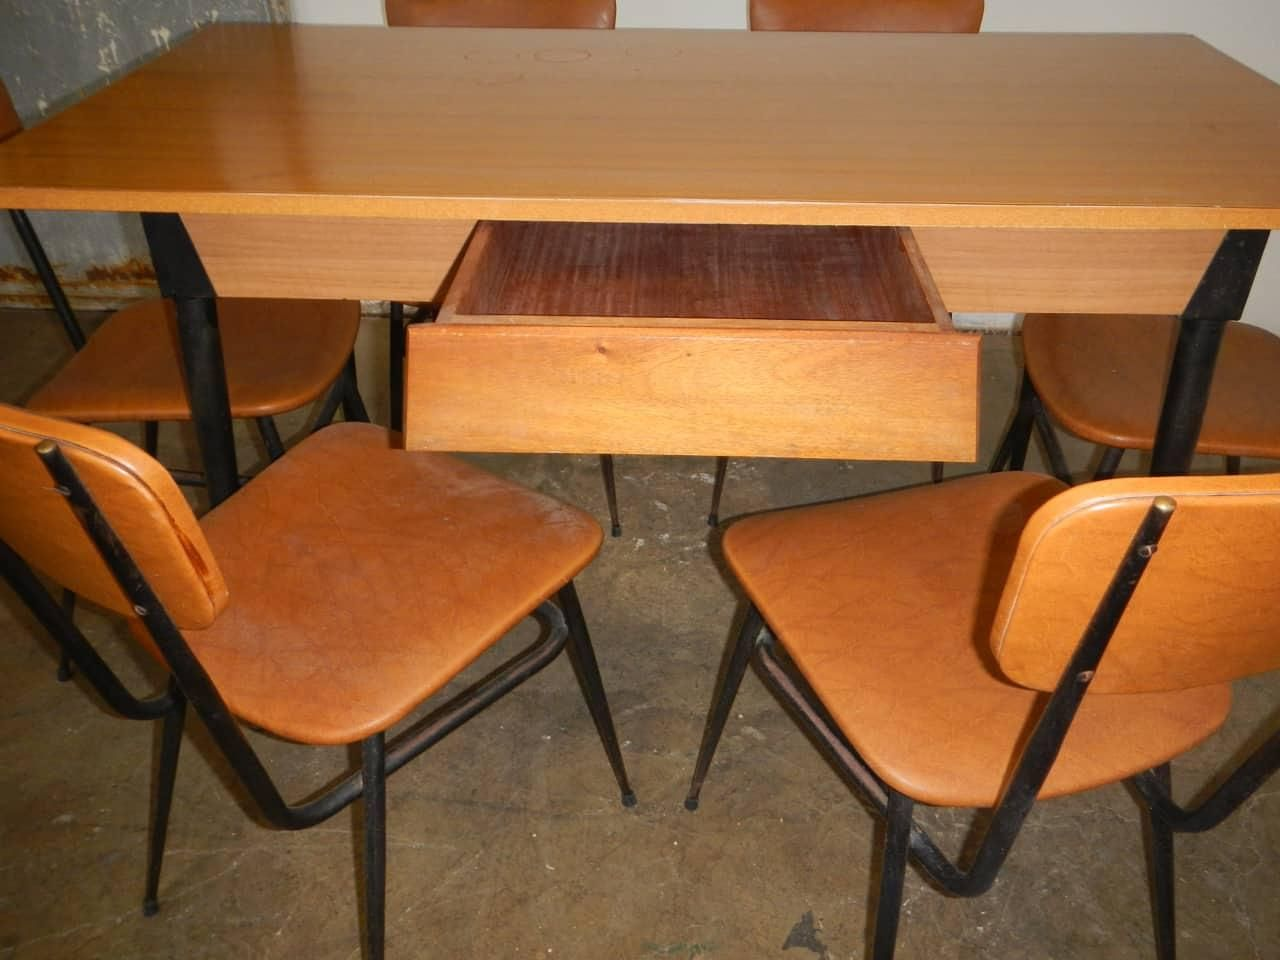 Vintage Dining Room Set 1950s Formica Table And Chairs